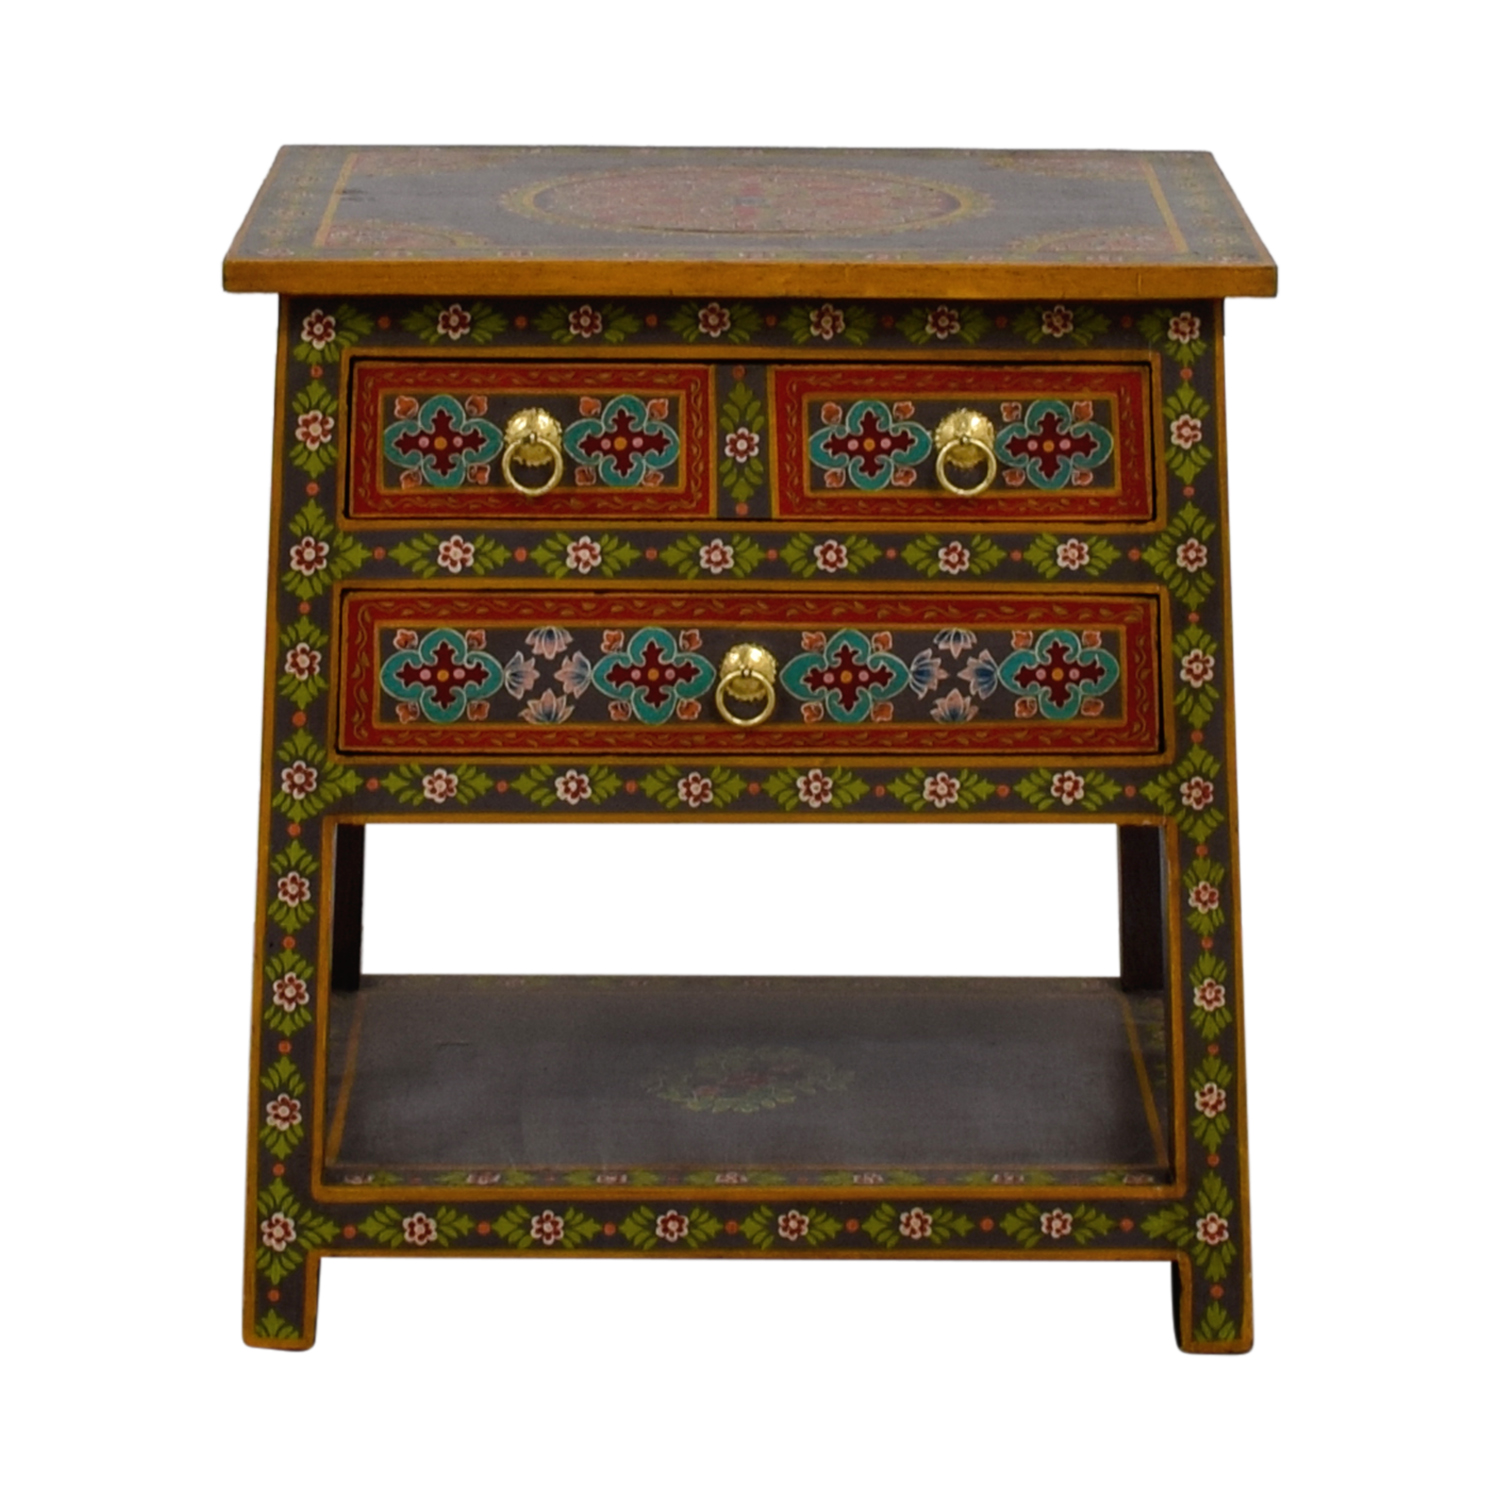 - 54% OFF - World Market World Market Wood Floral Painted Two-Drawer